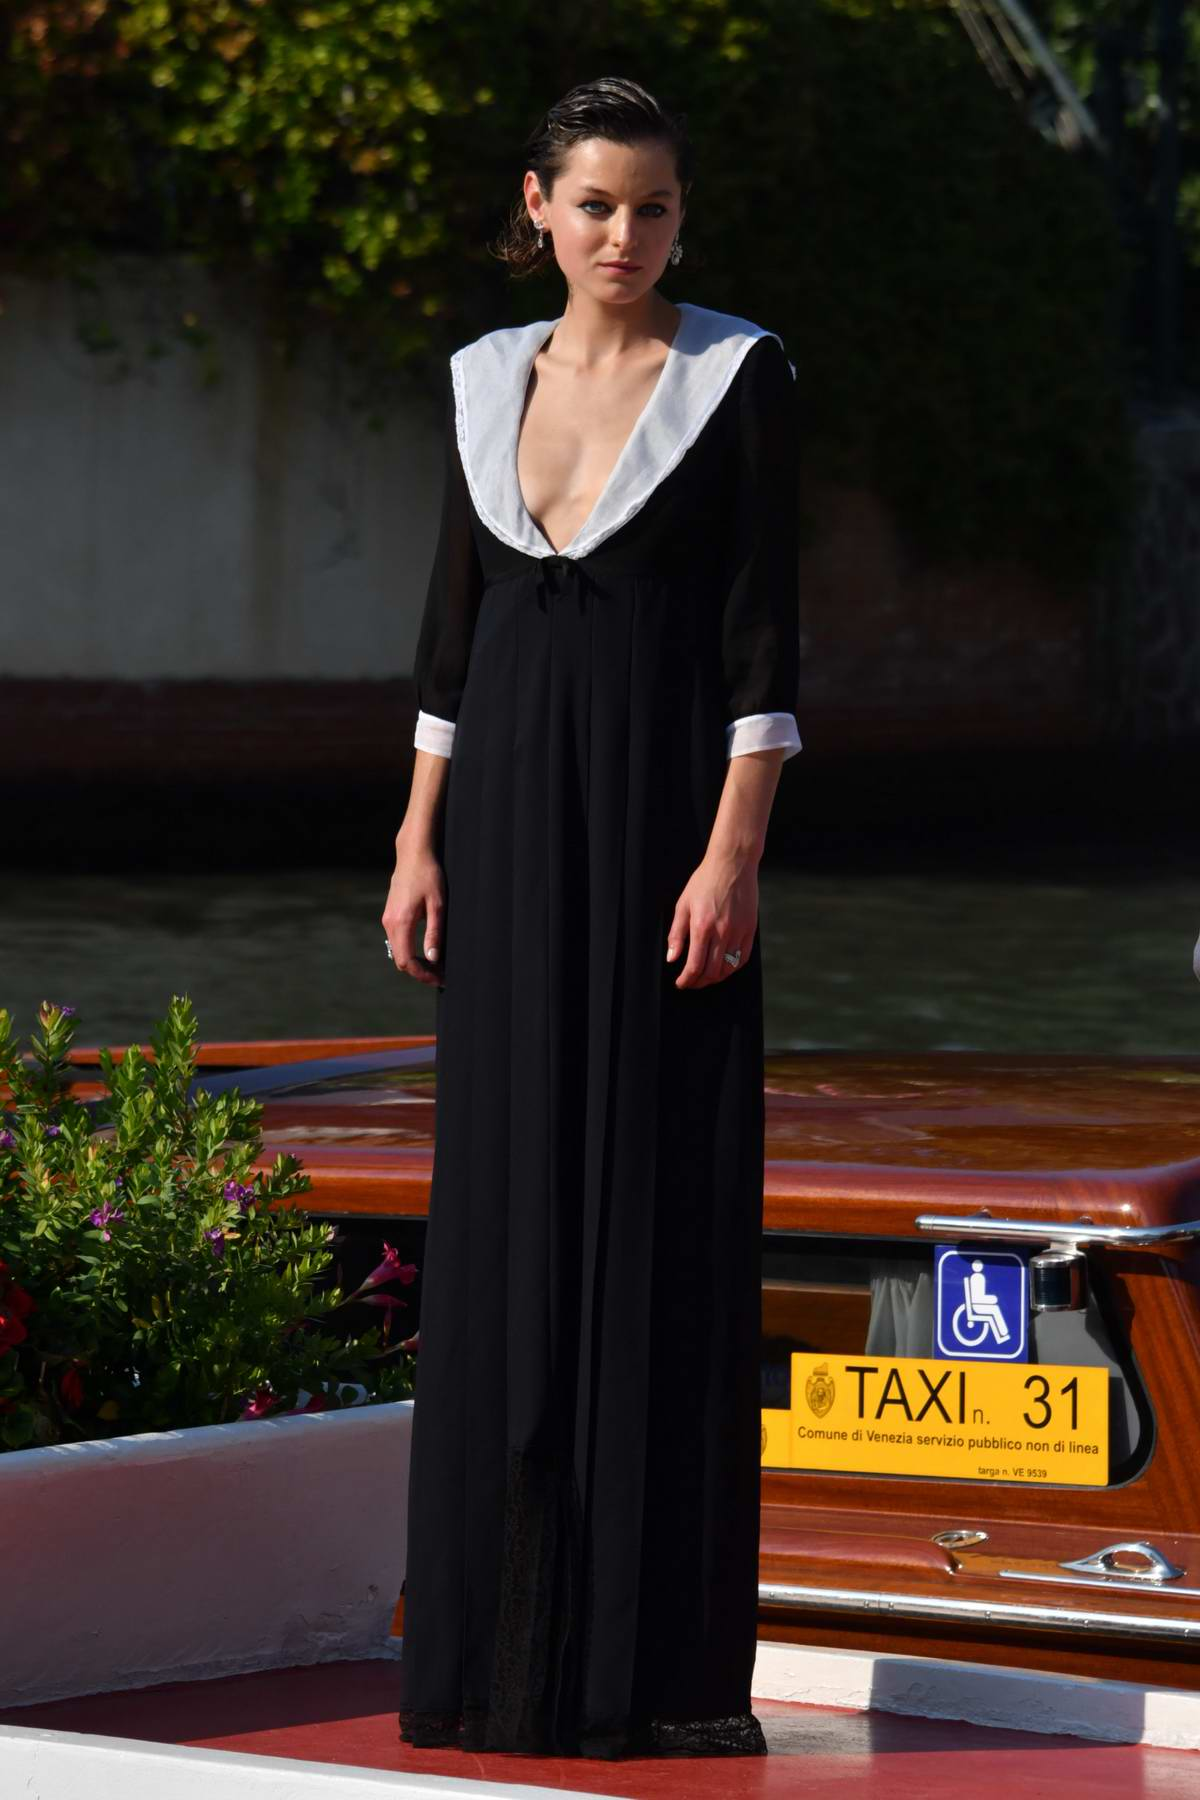 Emma Corrin looks chic in a black dress as she arrives at the 77th Venice Film Festival in Venice, Italy